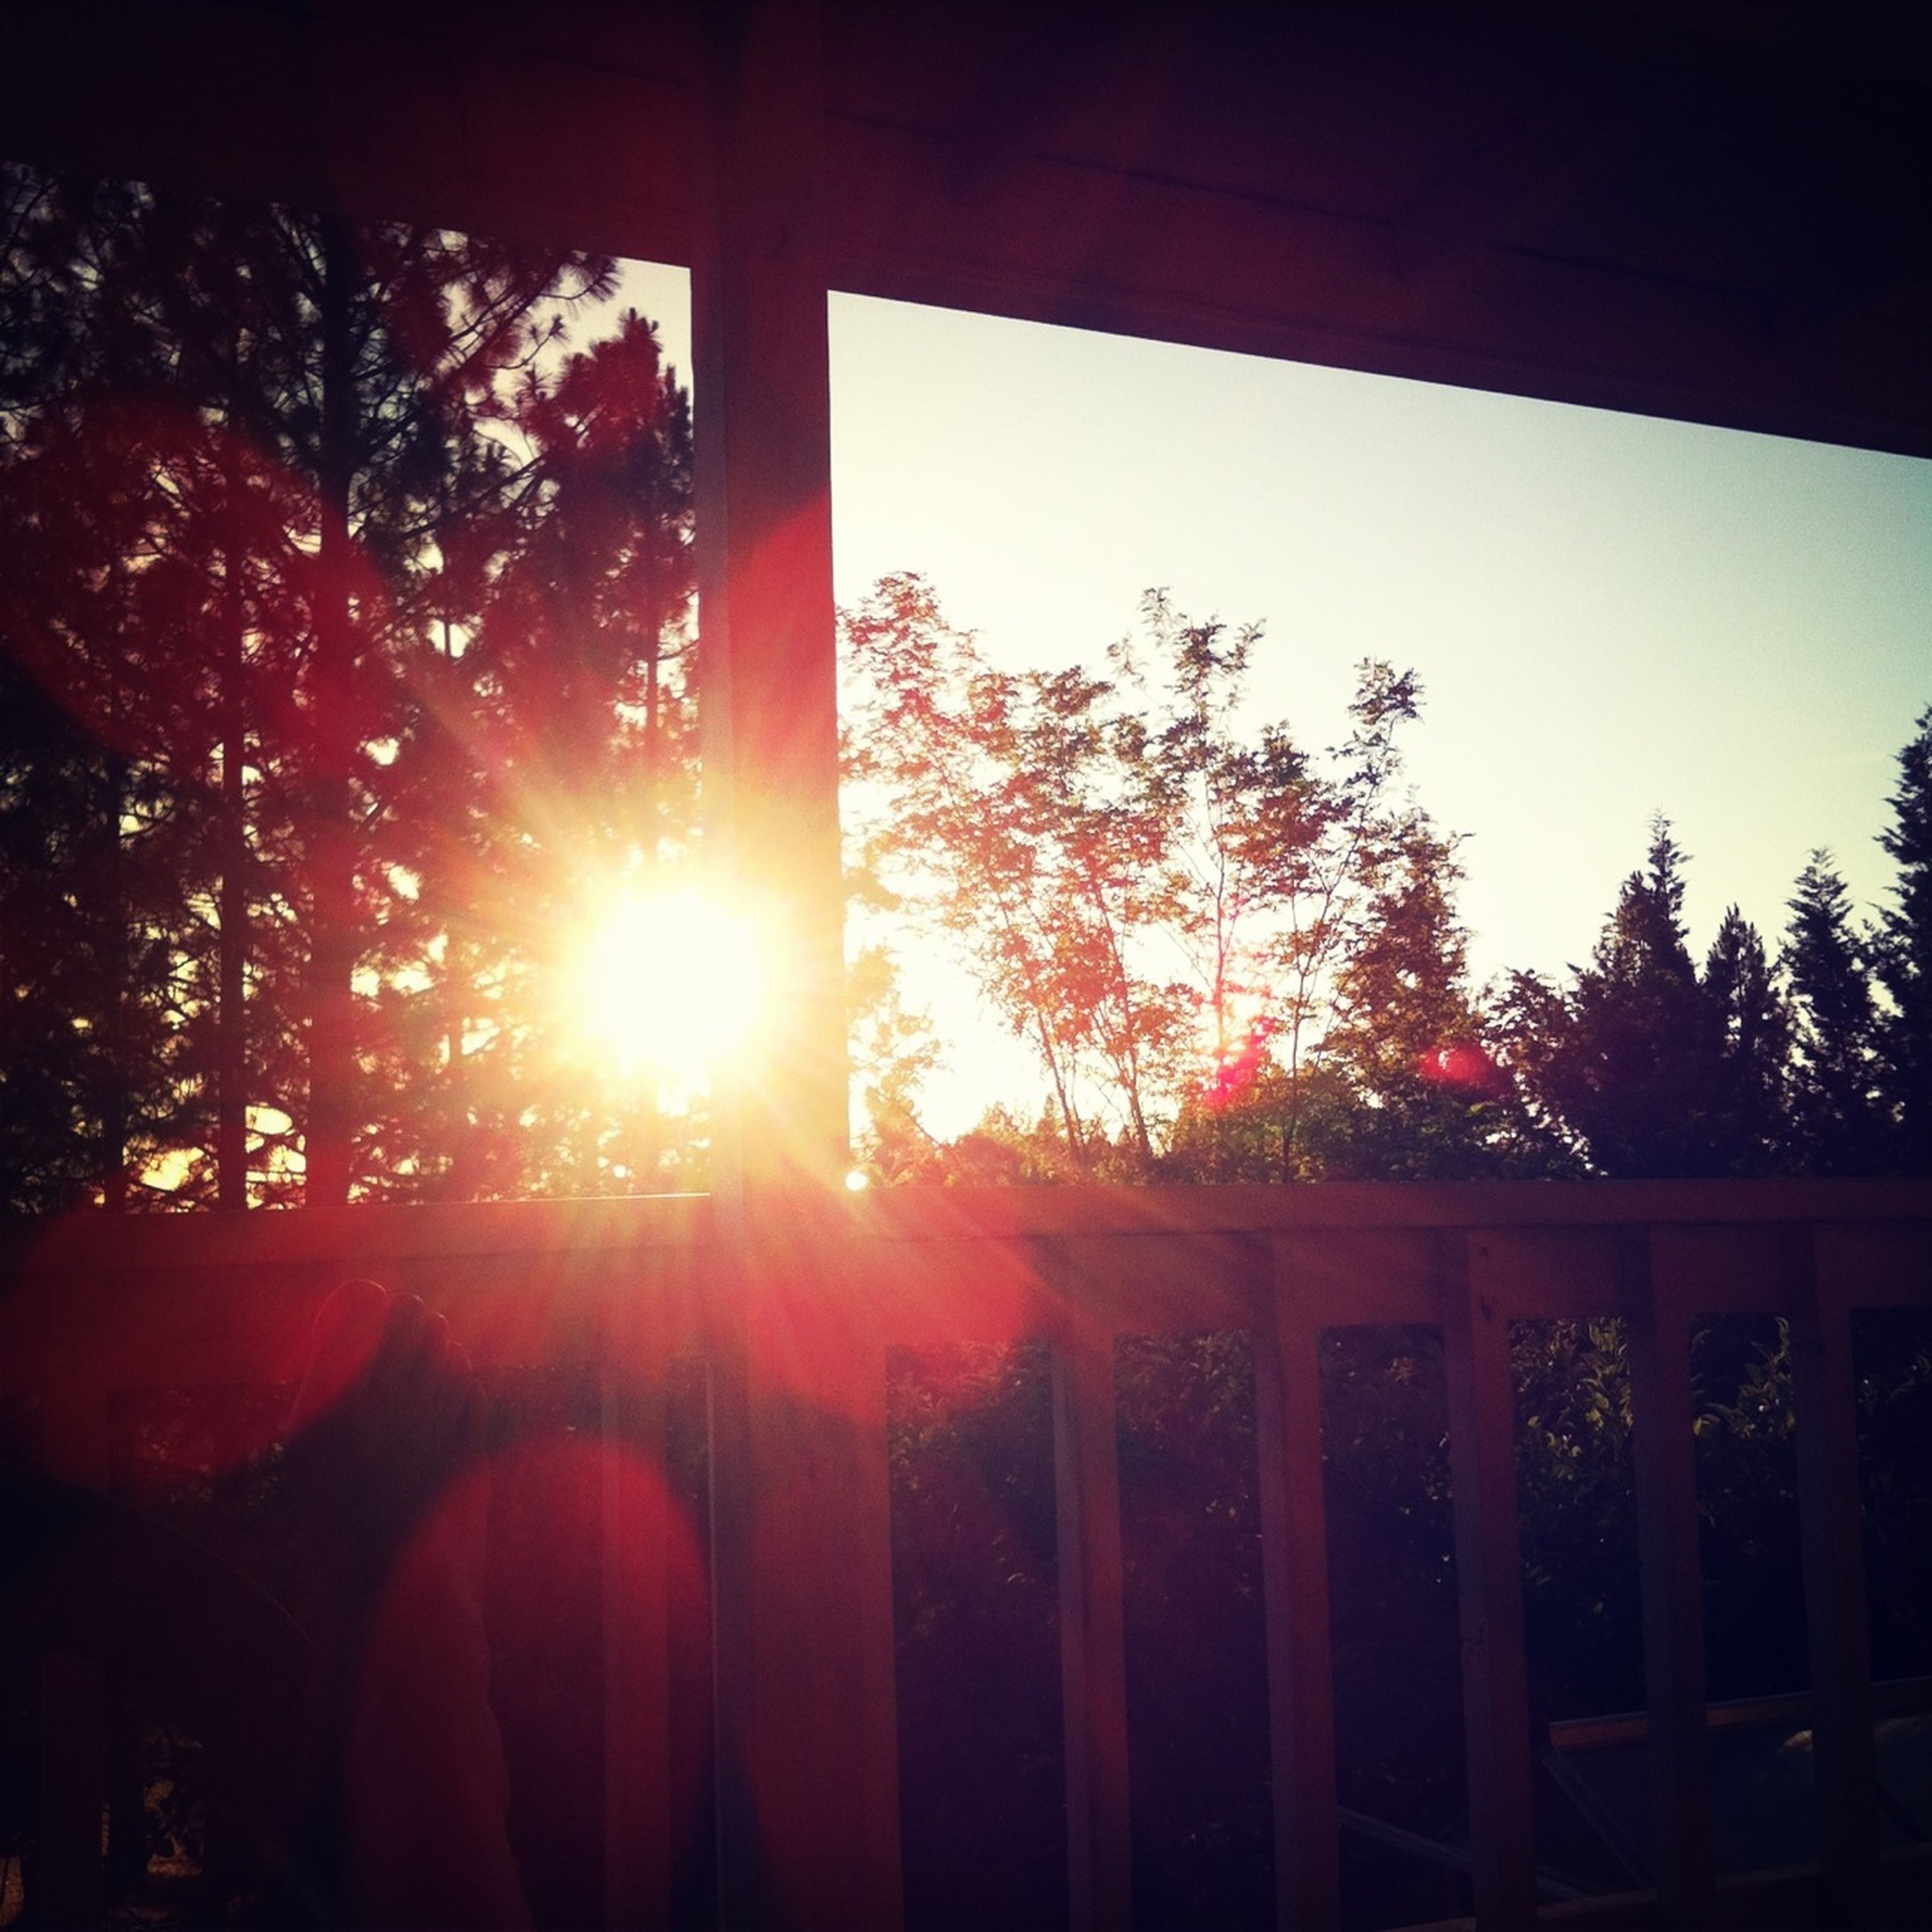 sun, sunset, sunlight, tree, sunbeam, silhouette, lens flare, clear sky, nature, sky, orange color, tranquility, beauty in nature, no people, tranquil scene, window, outdoors, scenics, railing, built structure